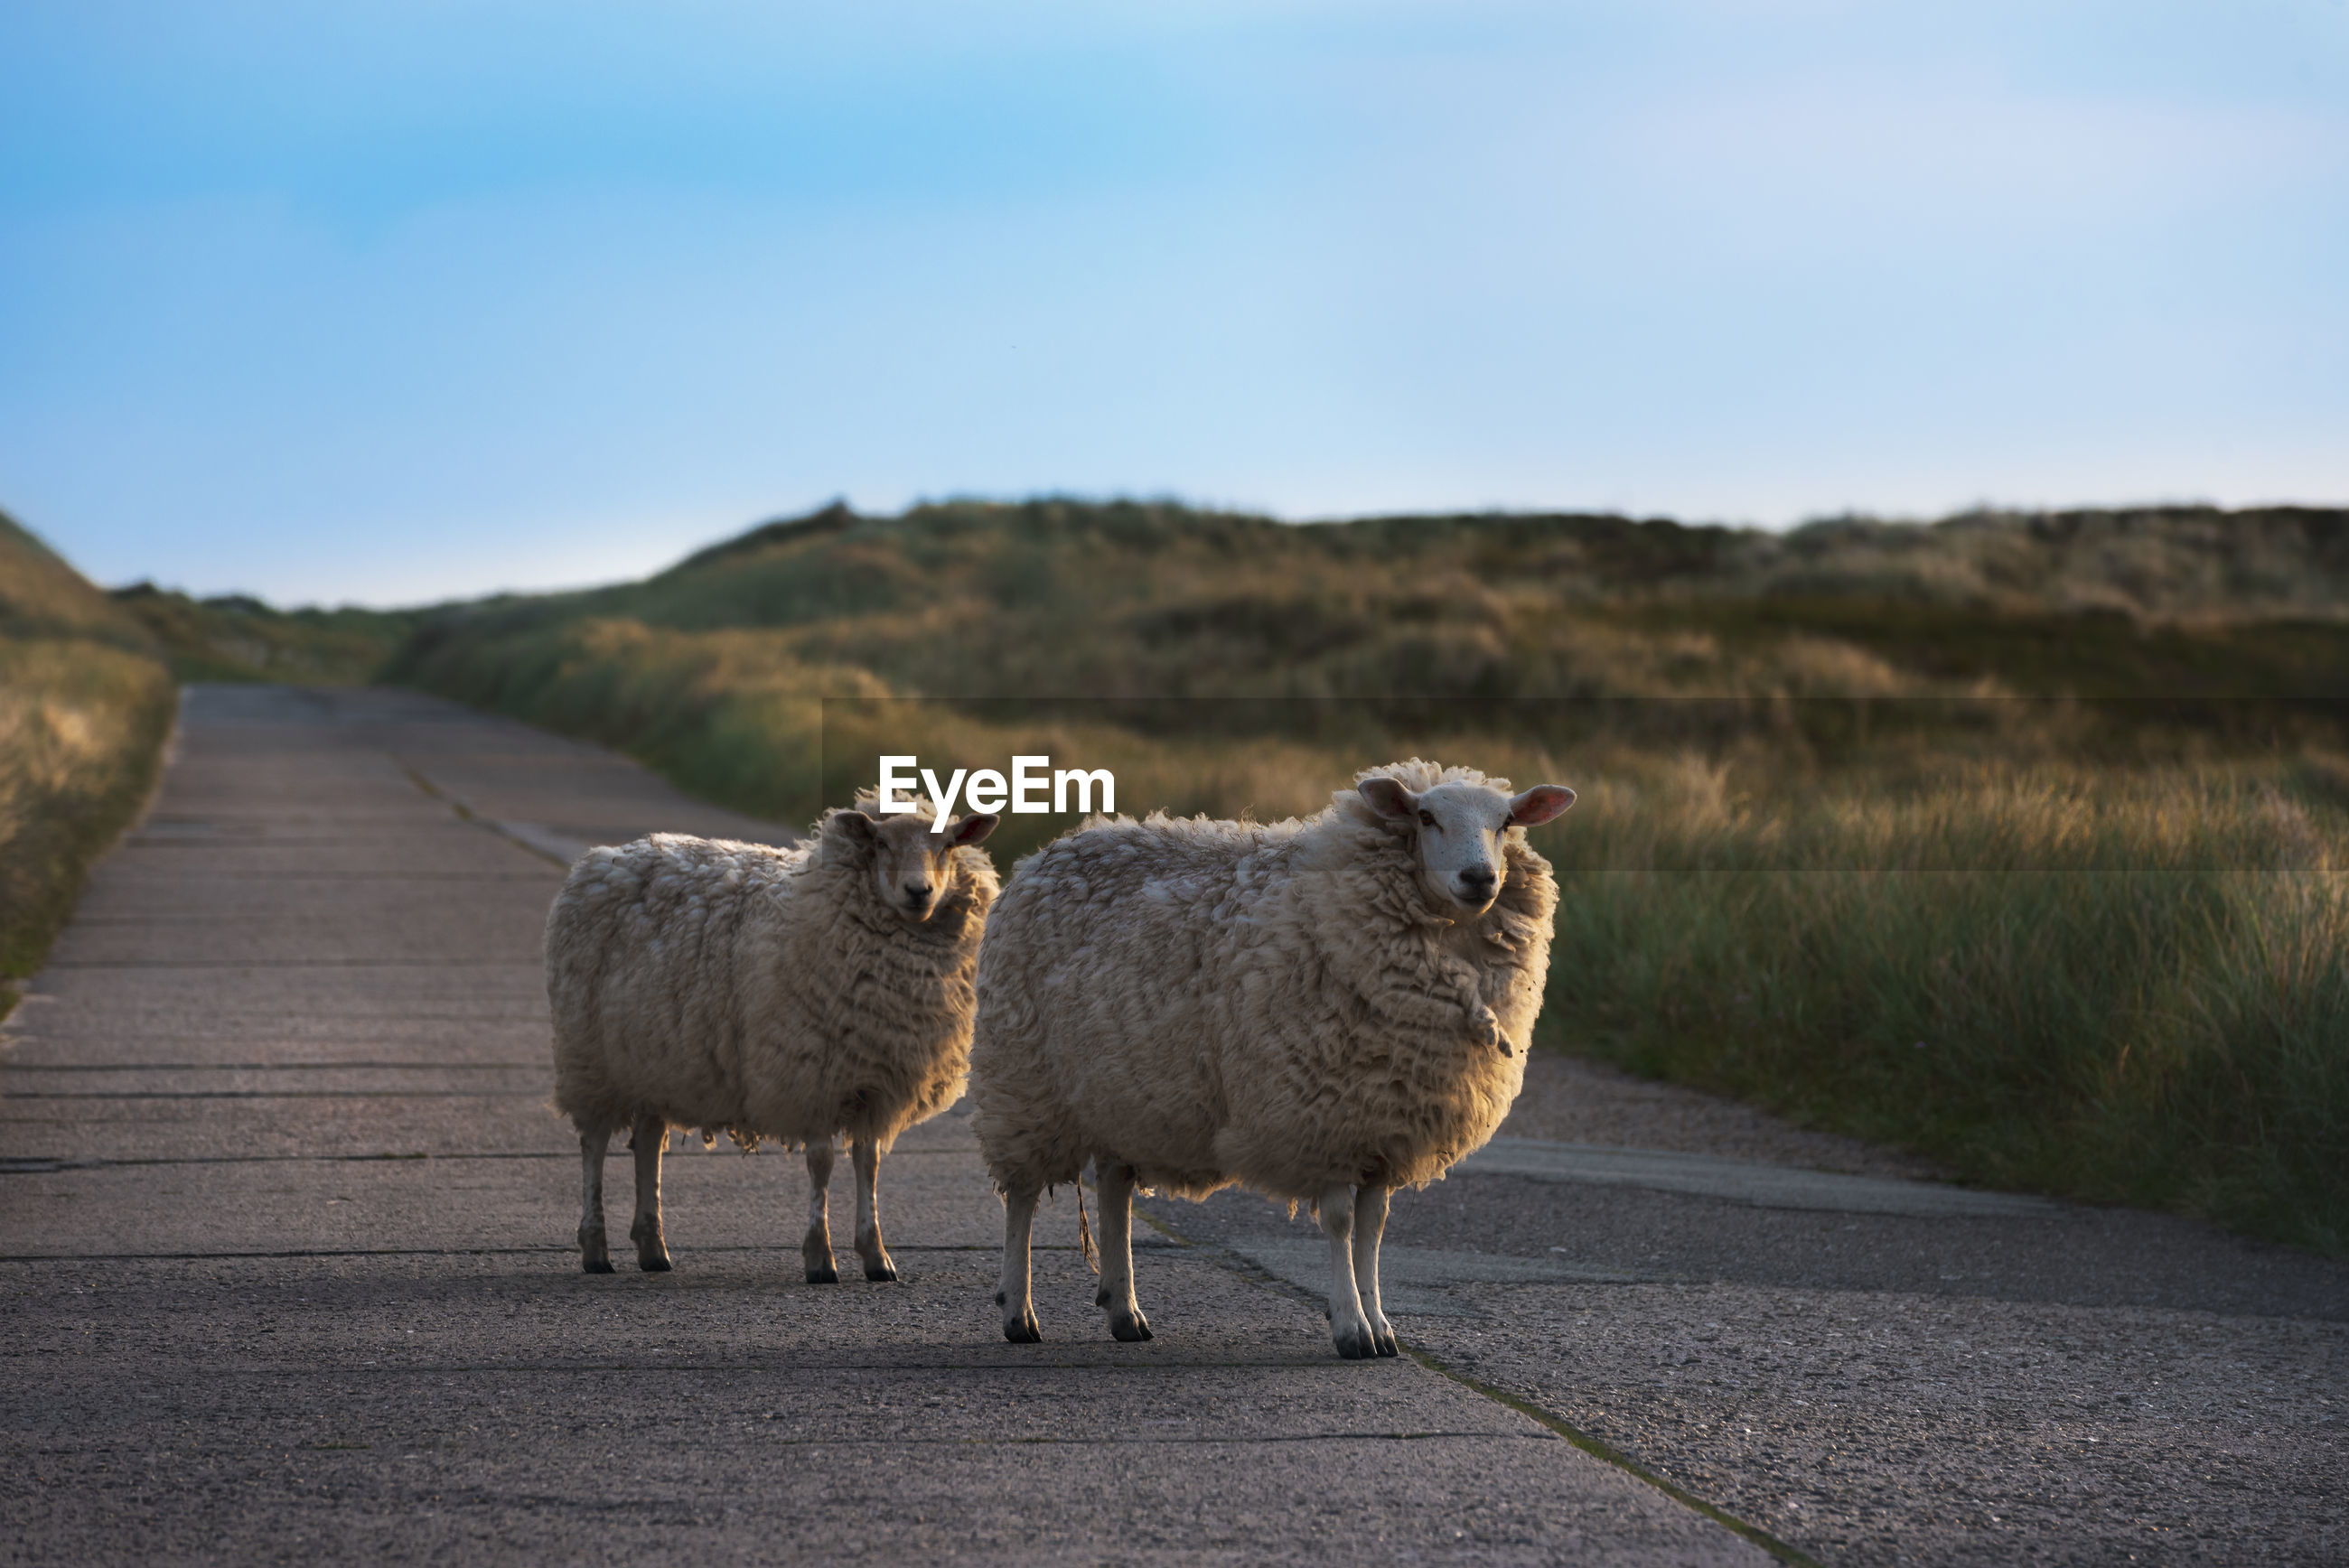 Sheep standing on road against blue sky